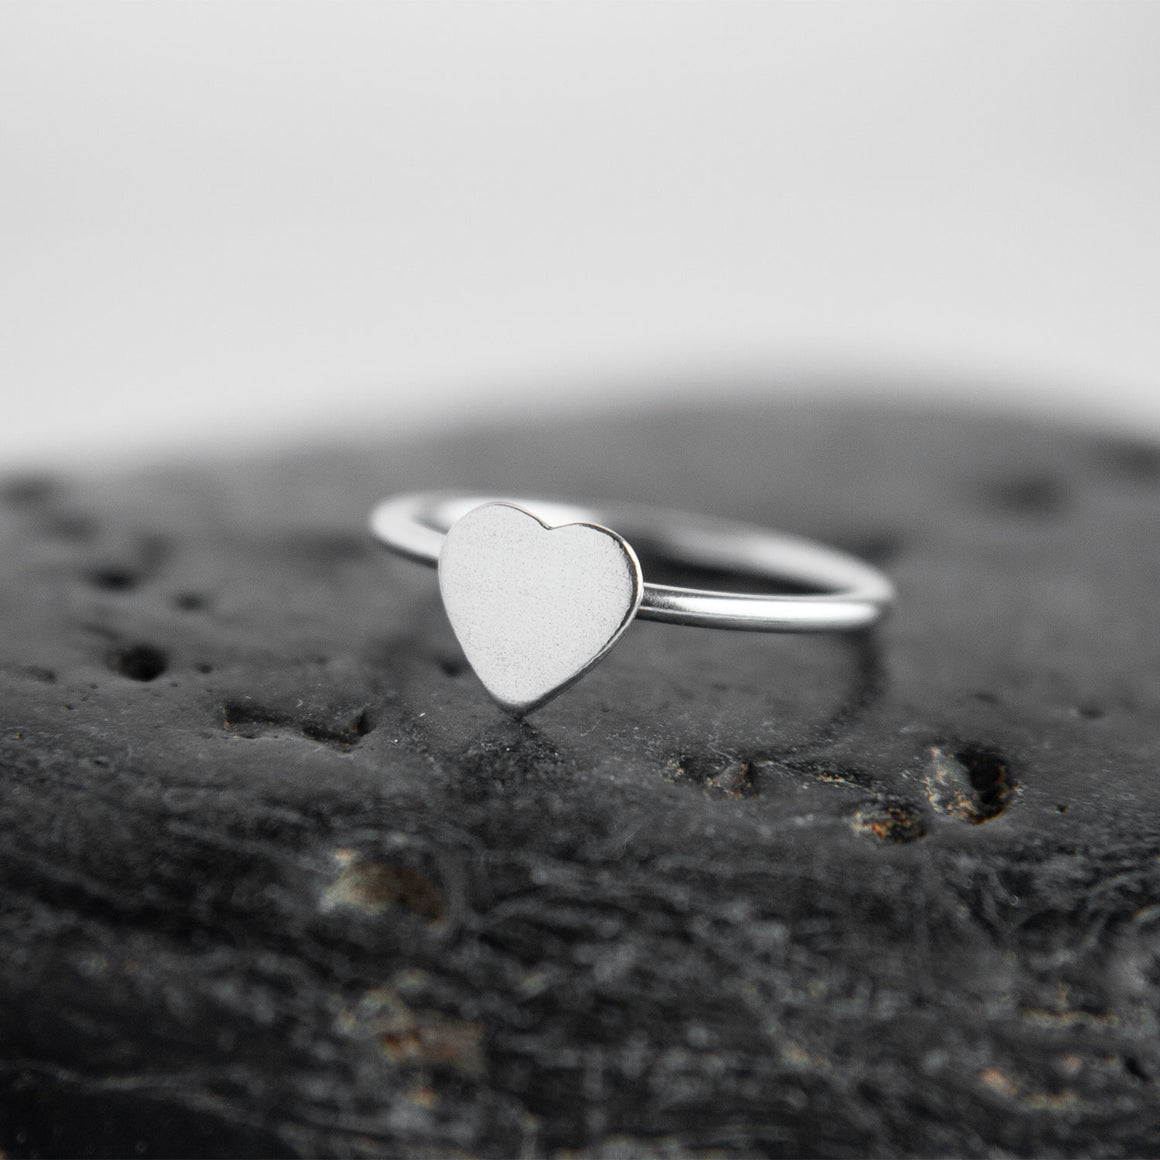 Aretha Sterling Silver Heart Stacking Ring available at Micky Chase Jewelry